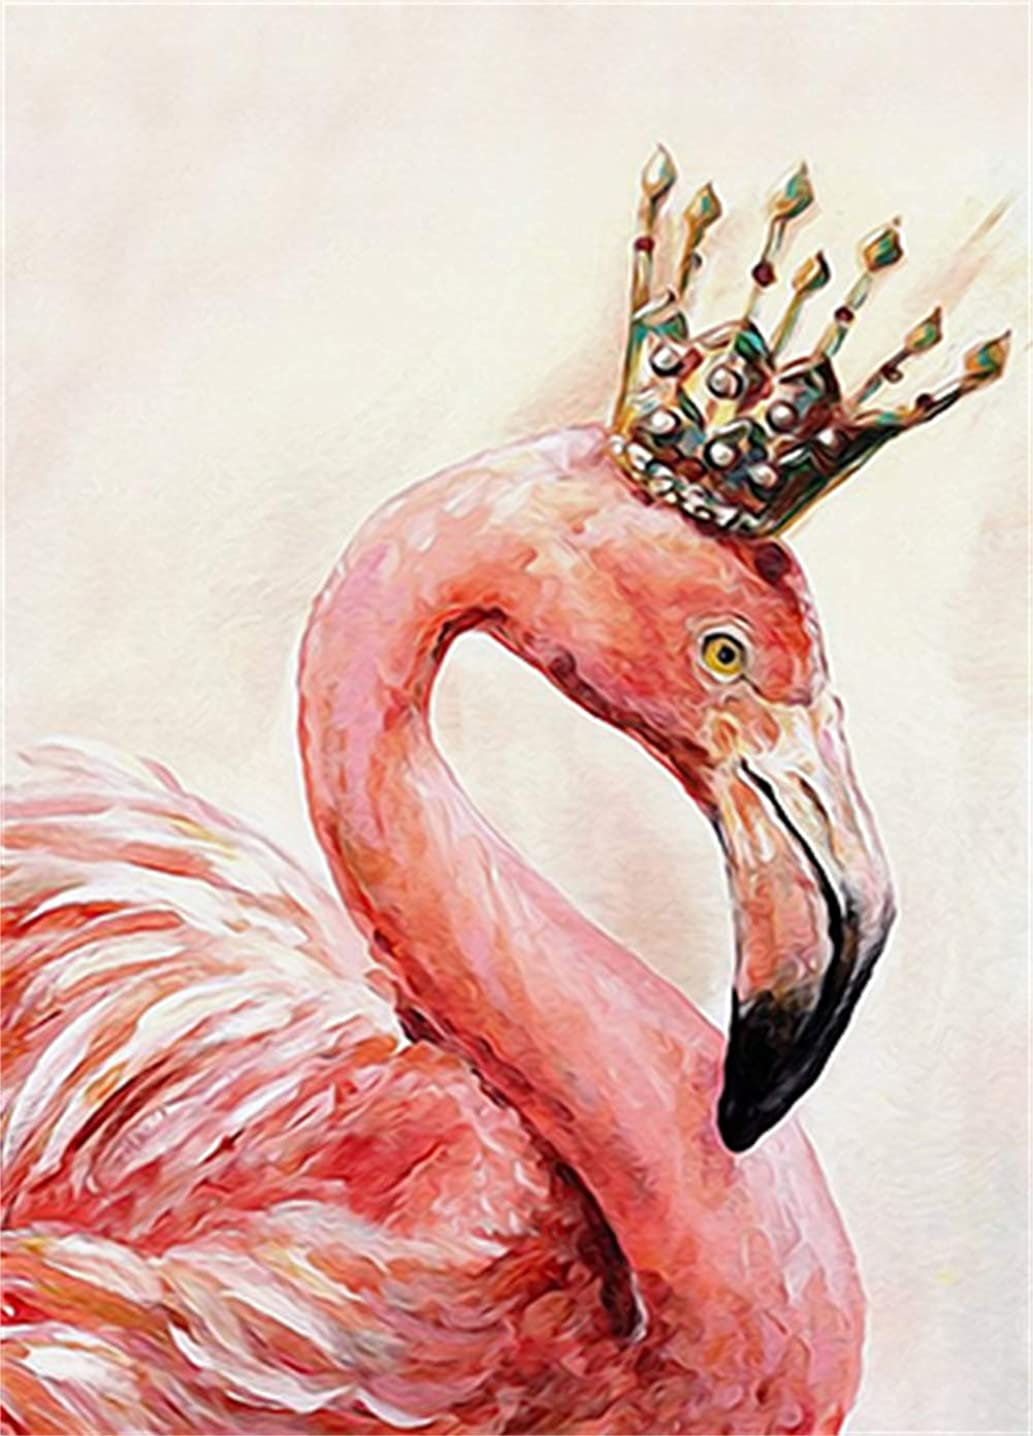 5D Diamond Painting Kits for Adults Full Drill- Diamond Art Kits for Beginners and Students with Adults' Paint-by-Number Kits for Wall Decoration, Gift, Relax (Flamingo) ttuizimzd